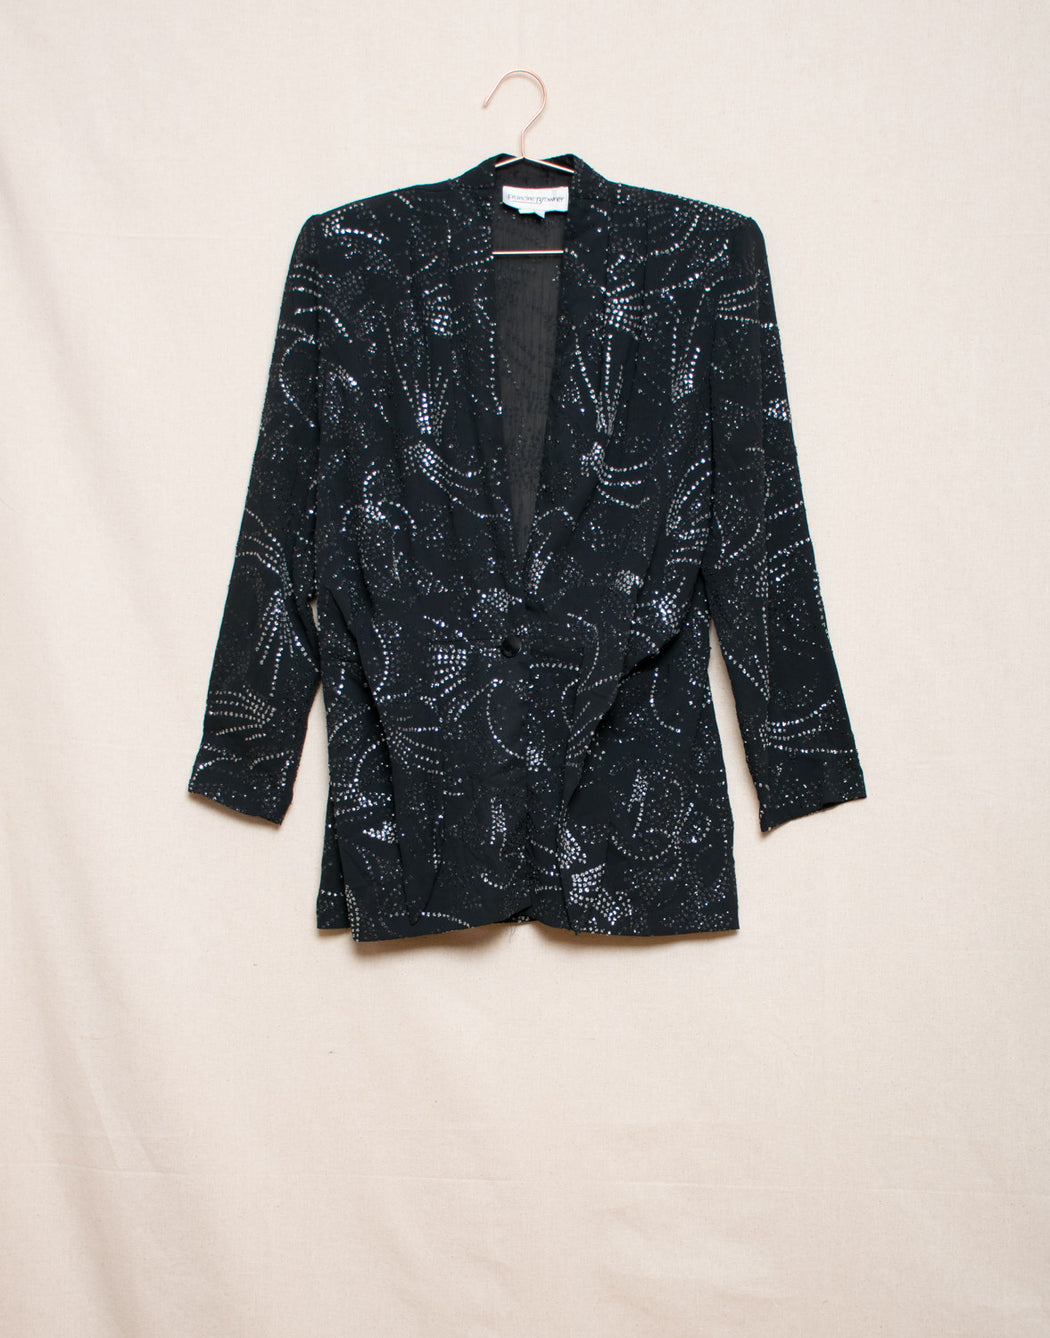 Black sparkle sheer jacket